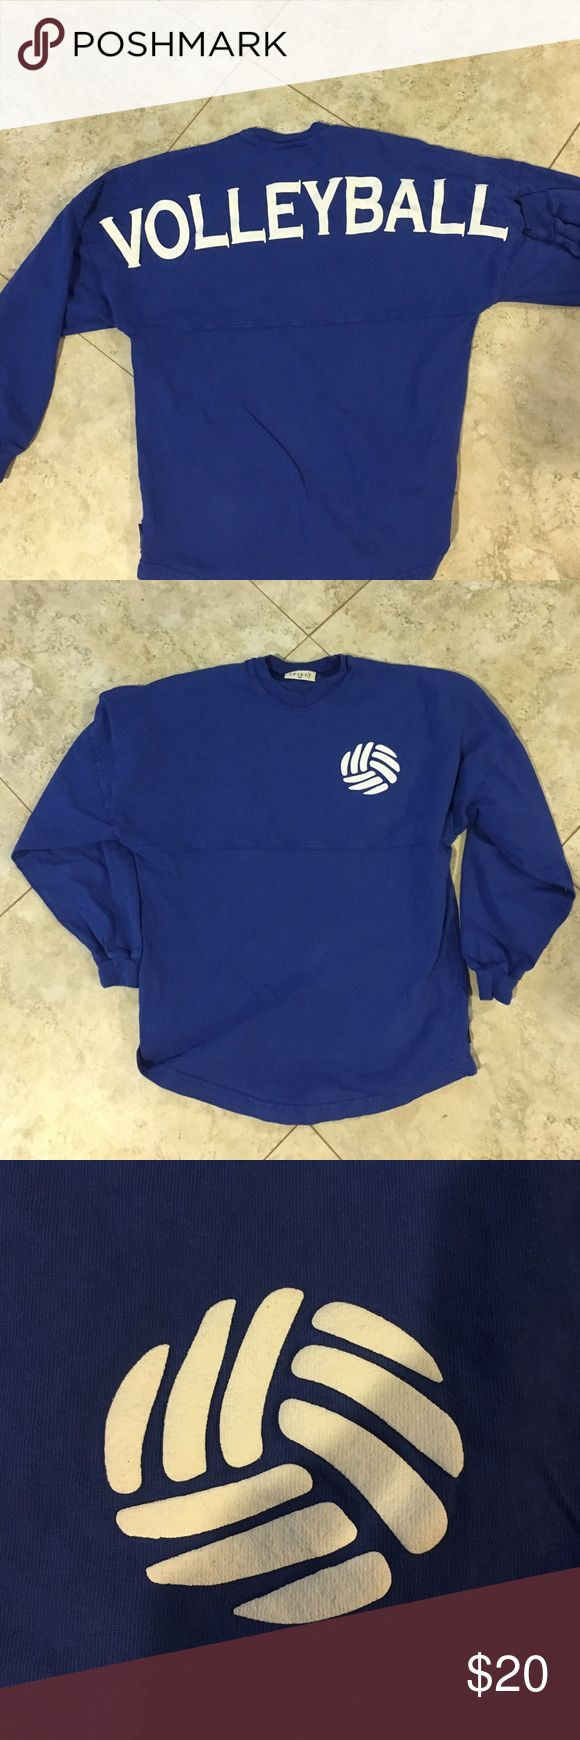 Varsity jersey Royal blue/purple logg sleeve volleyball varsity jersey shirt. has a small volleyball on the front. rubs big so this would fit a size small. price is a little high because of what poshmark takes from it (Nike for exposure) Nike Tops Tees - Long Sleeve